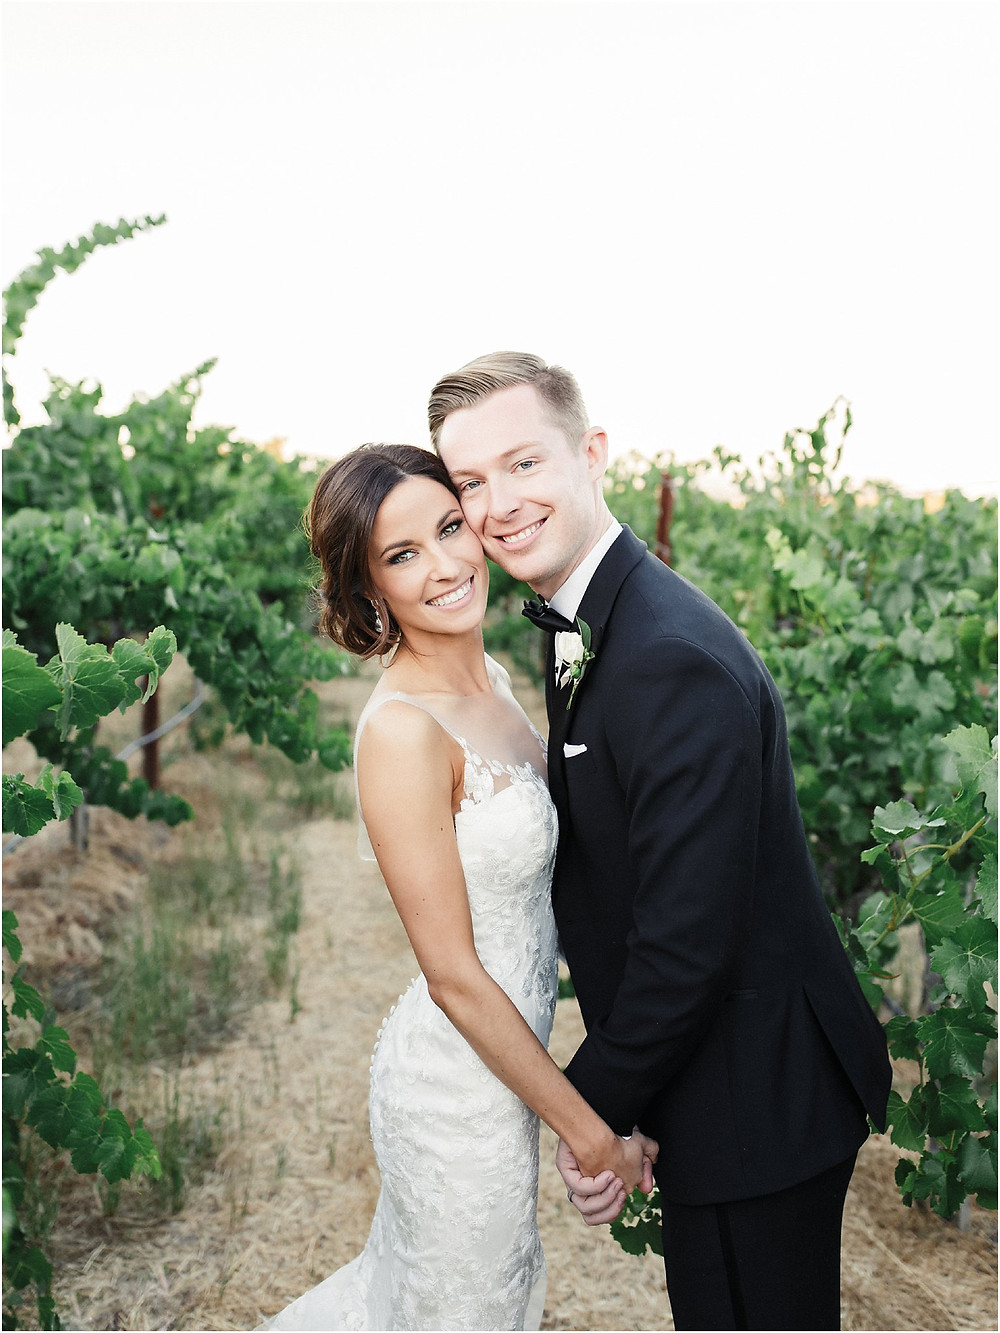 Sonoma Wedding Photography at Tyge William Cellars by Torrey Fox